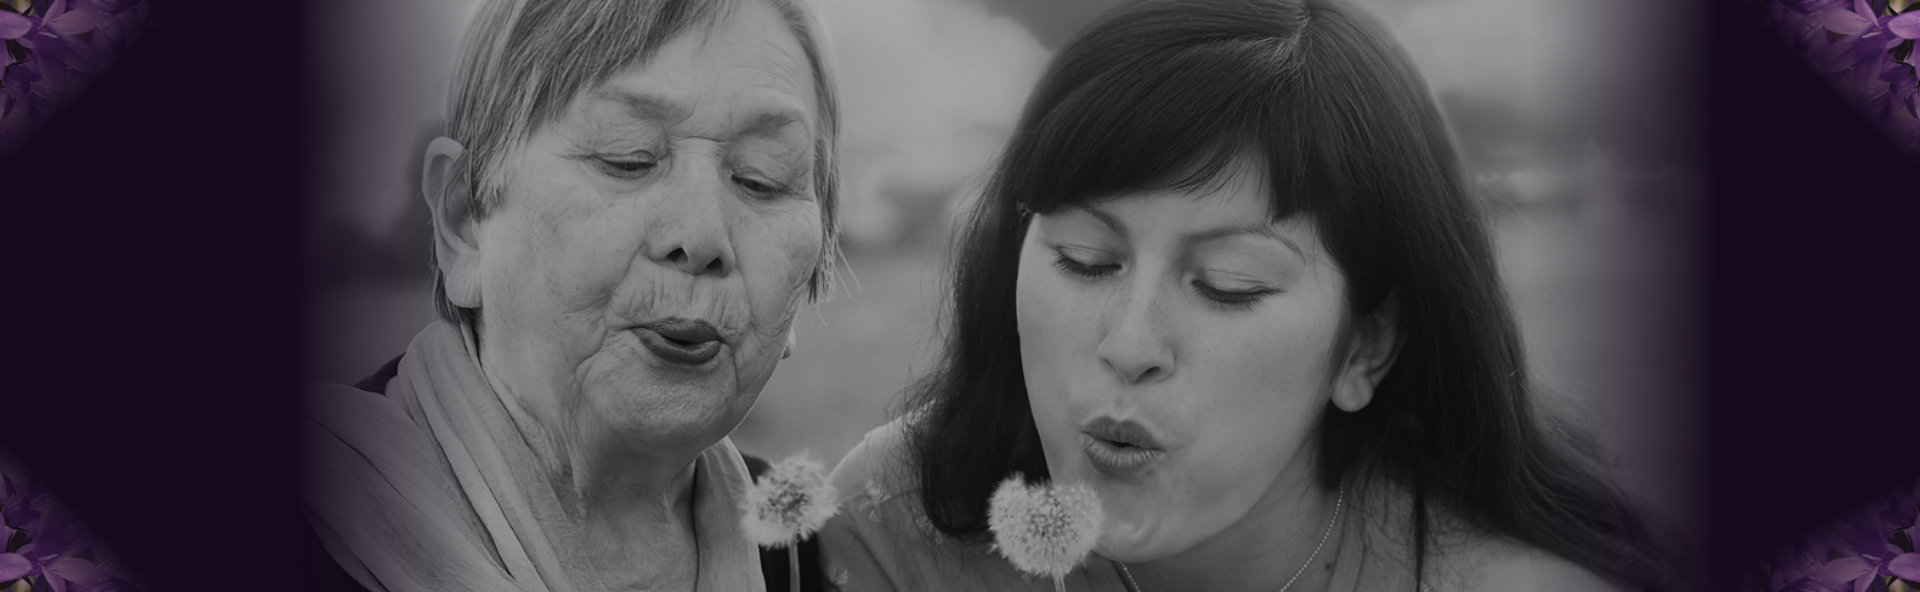 old woman and lady blowing dandelion